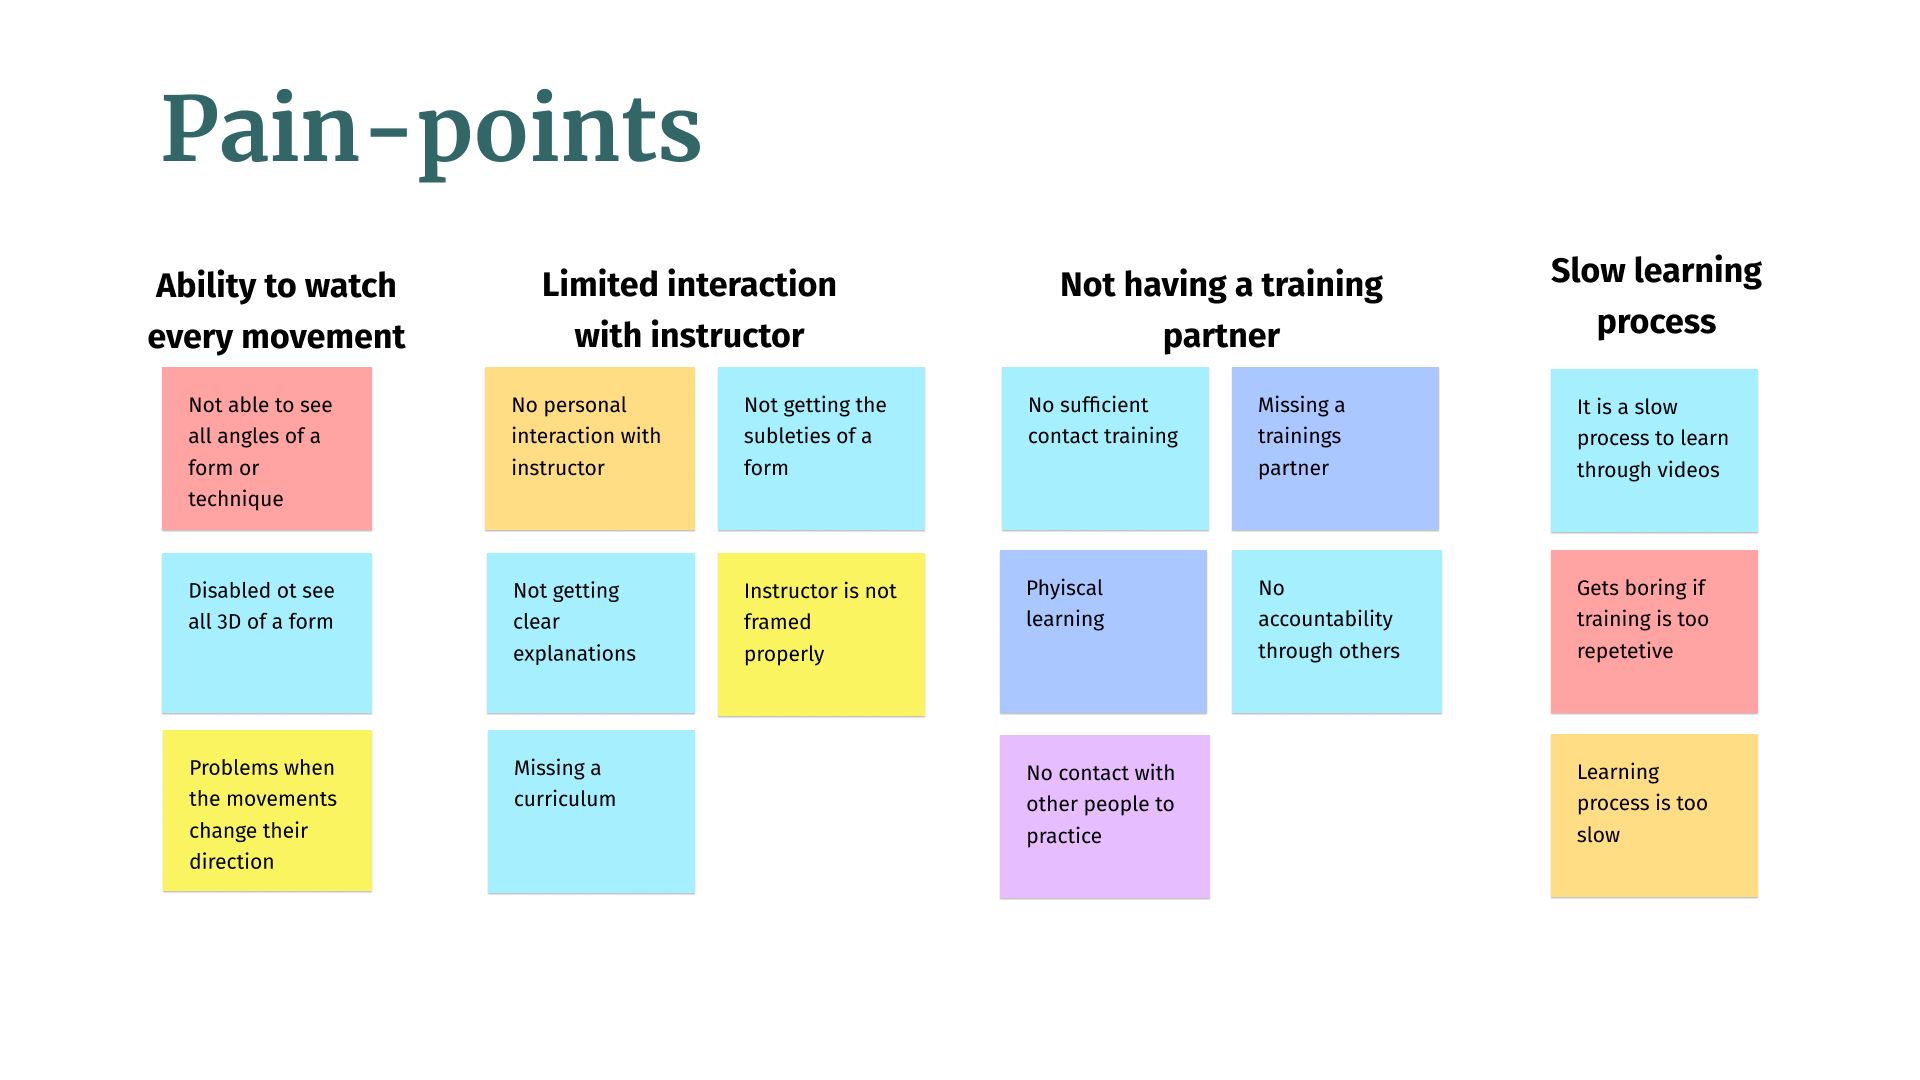 Pain points categorized into four sections.